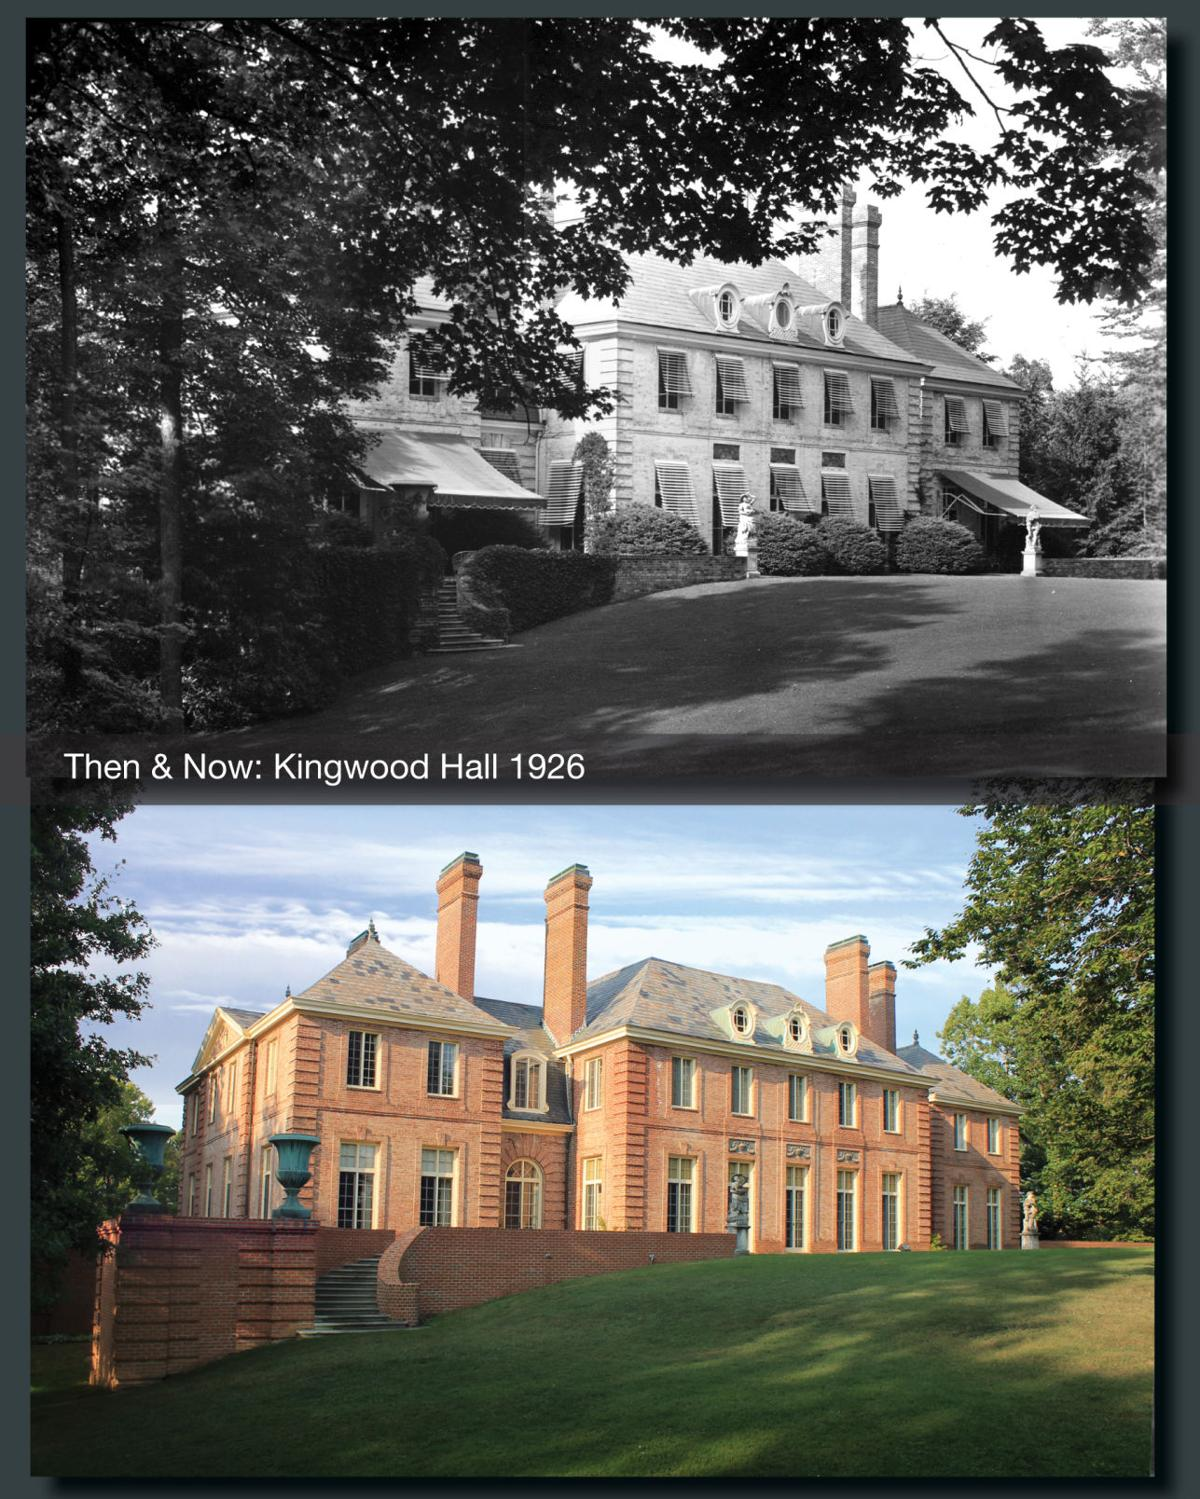 Then & Now: Kingwood Hall 1926